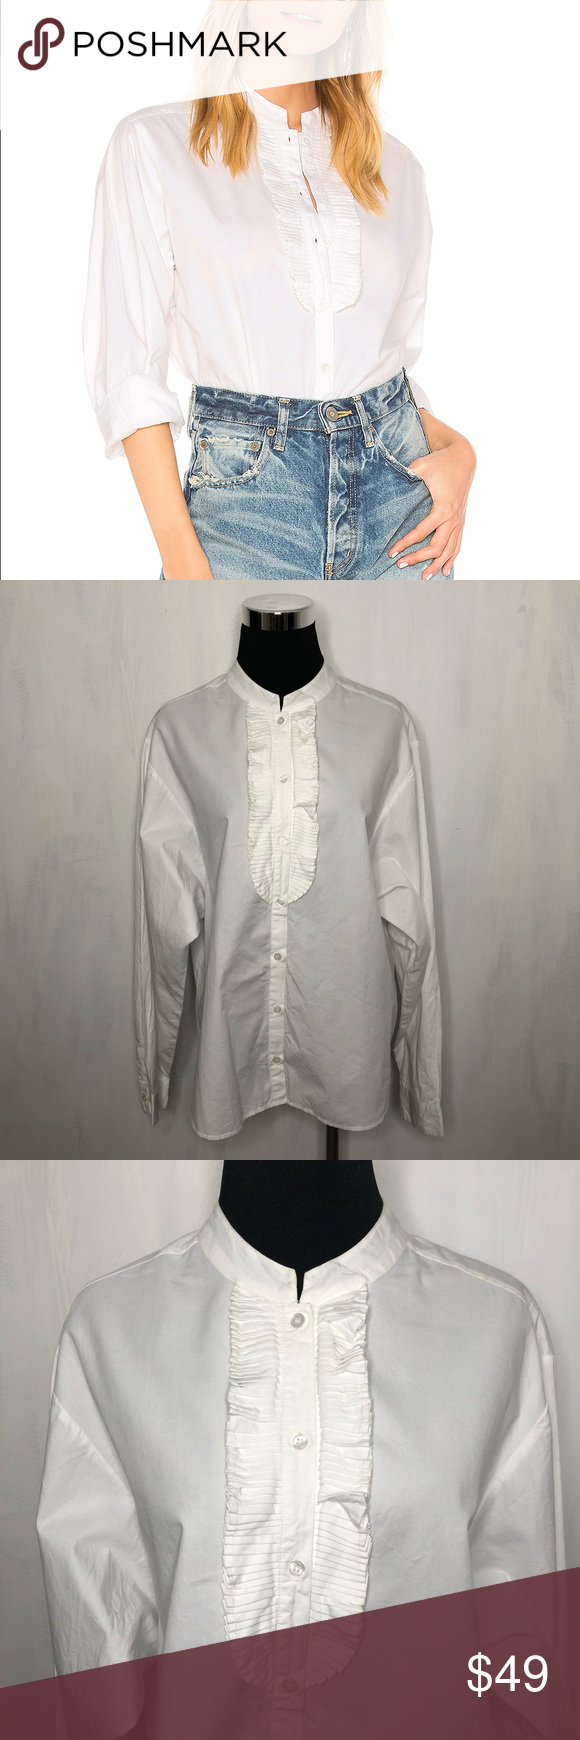 """Mes Demoiselles Mozart Cotton White Blouse 42 Mes Demoiselles Mozart Cotton White Blouse 42. Condition: excellent preloved with no signs of wear. Color: crisp stark white. Size: 42 is equal to a US 10. Measurements are approximate; taken while garment is lying flat:  22"""" across chest, 25"""" total length, 24"""" sleeve length after seam. Additional features: frilled bib, button down style, dolman sleeves. Inventory #0383 Mes Demoiselles Tops Button Down Shirts"""